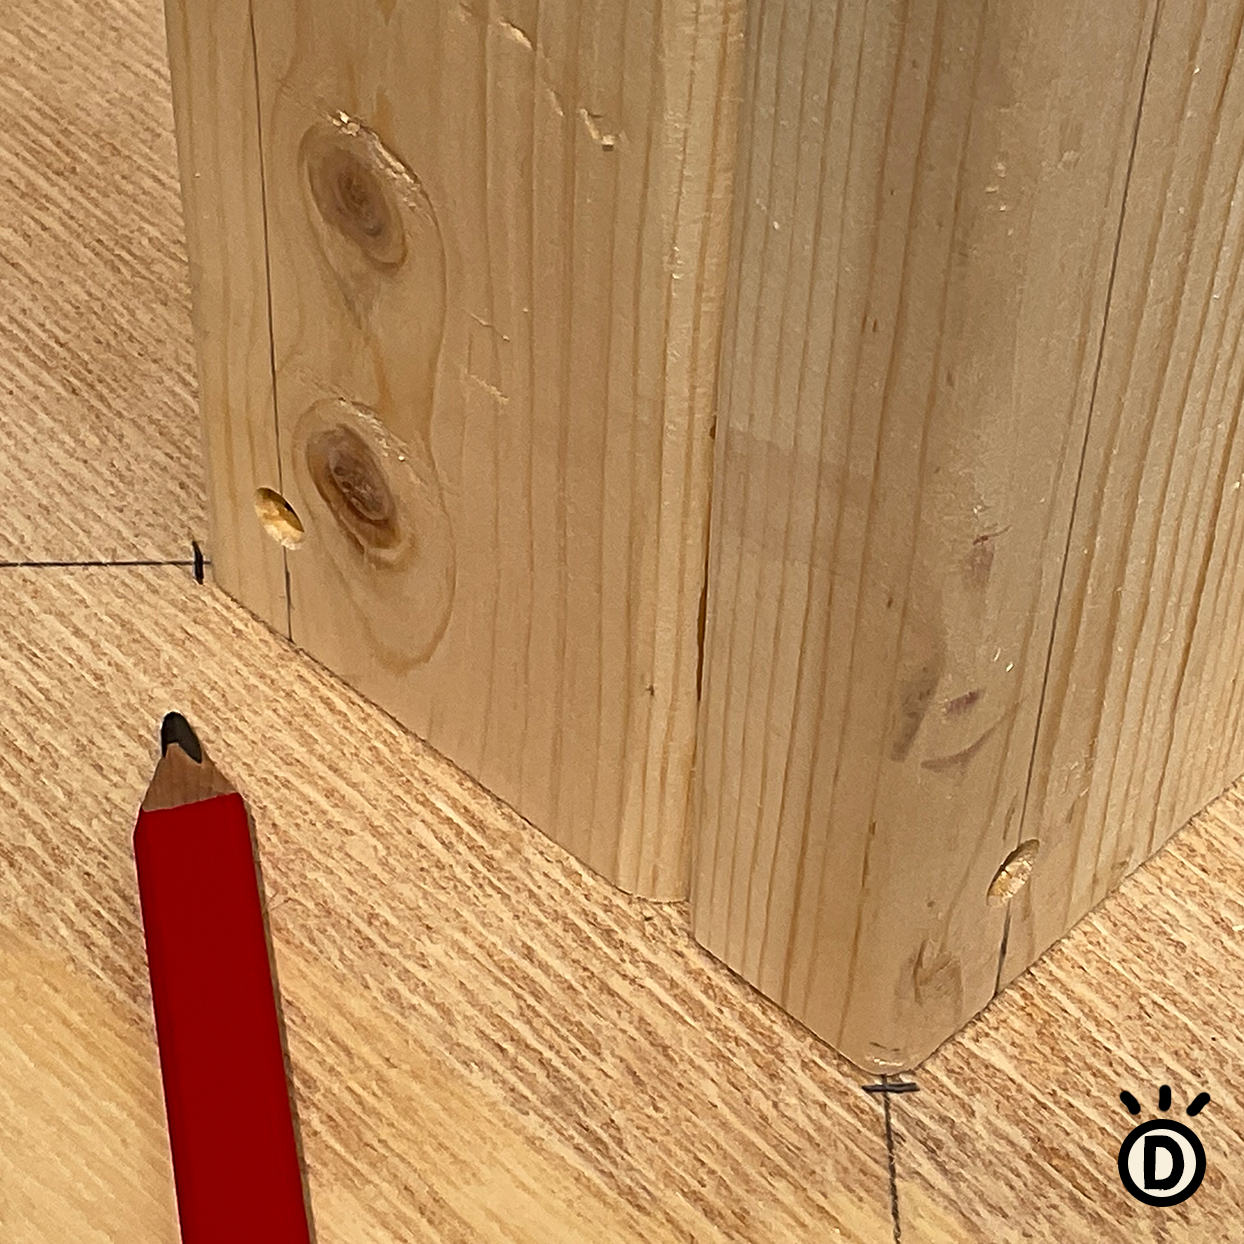 diy cat scratcher how-to marking wood center post with a pencil